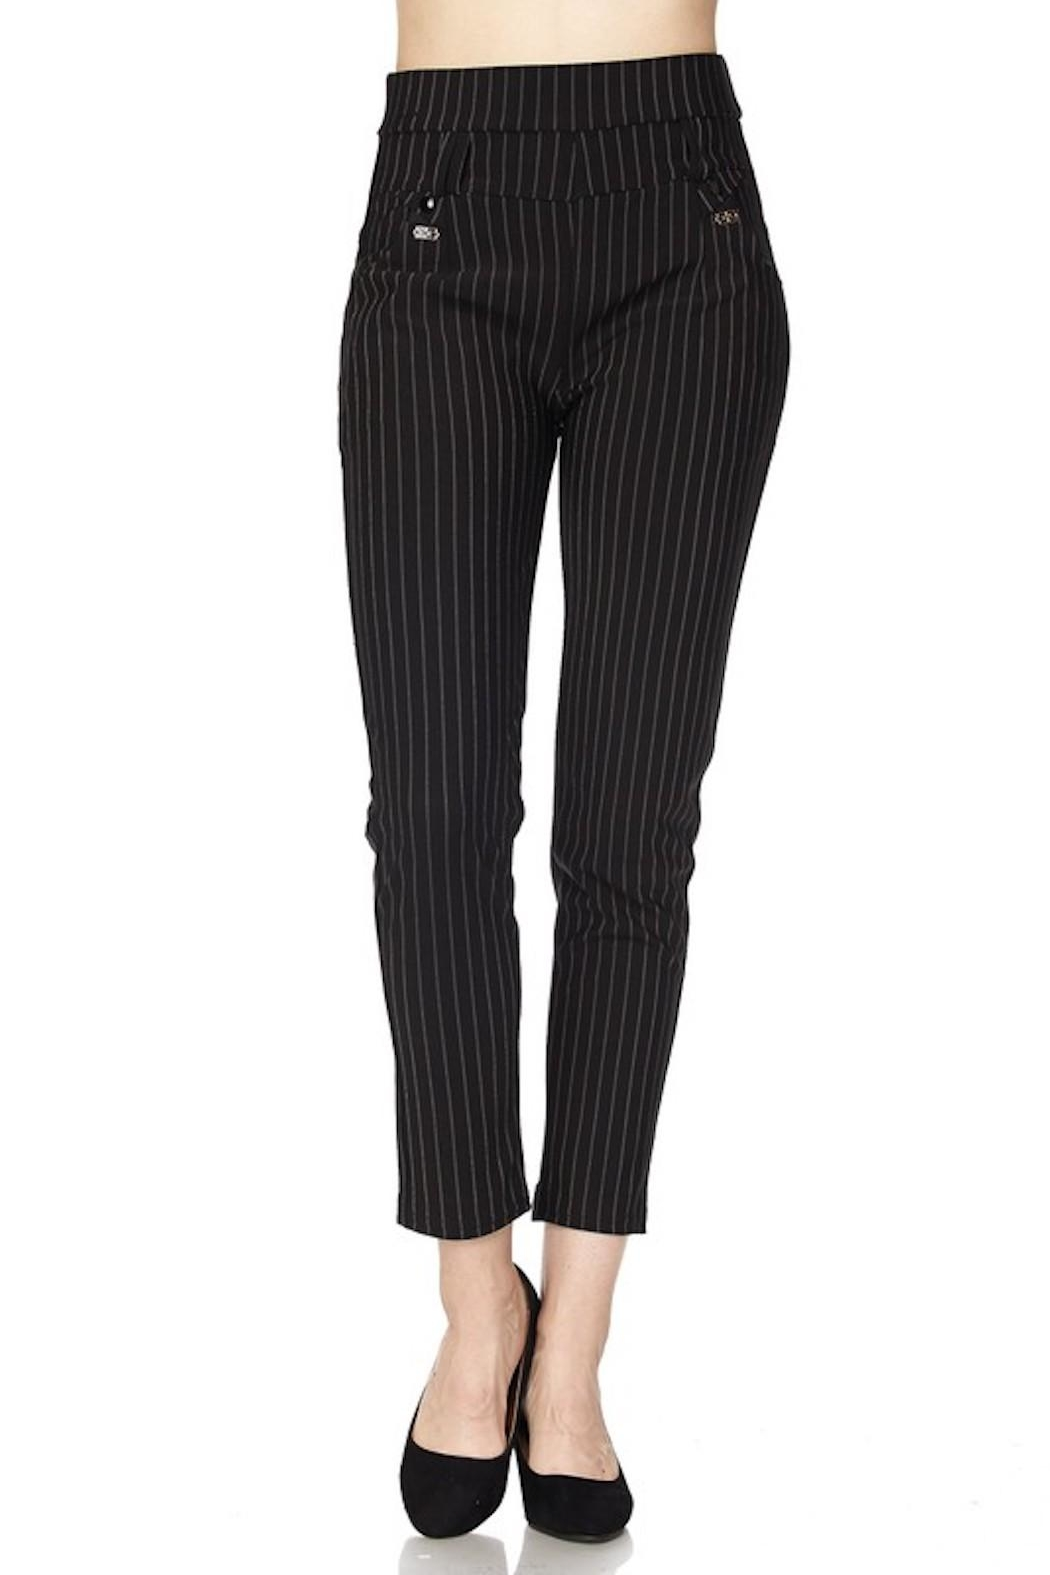 New Mix Pinstripe Stretch Pants - Front Cropped Image